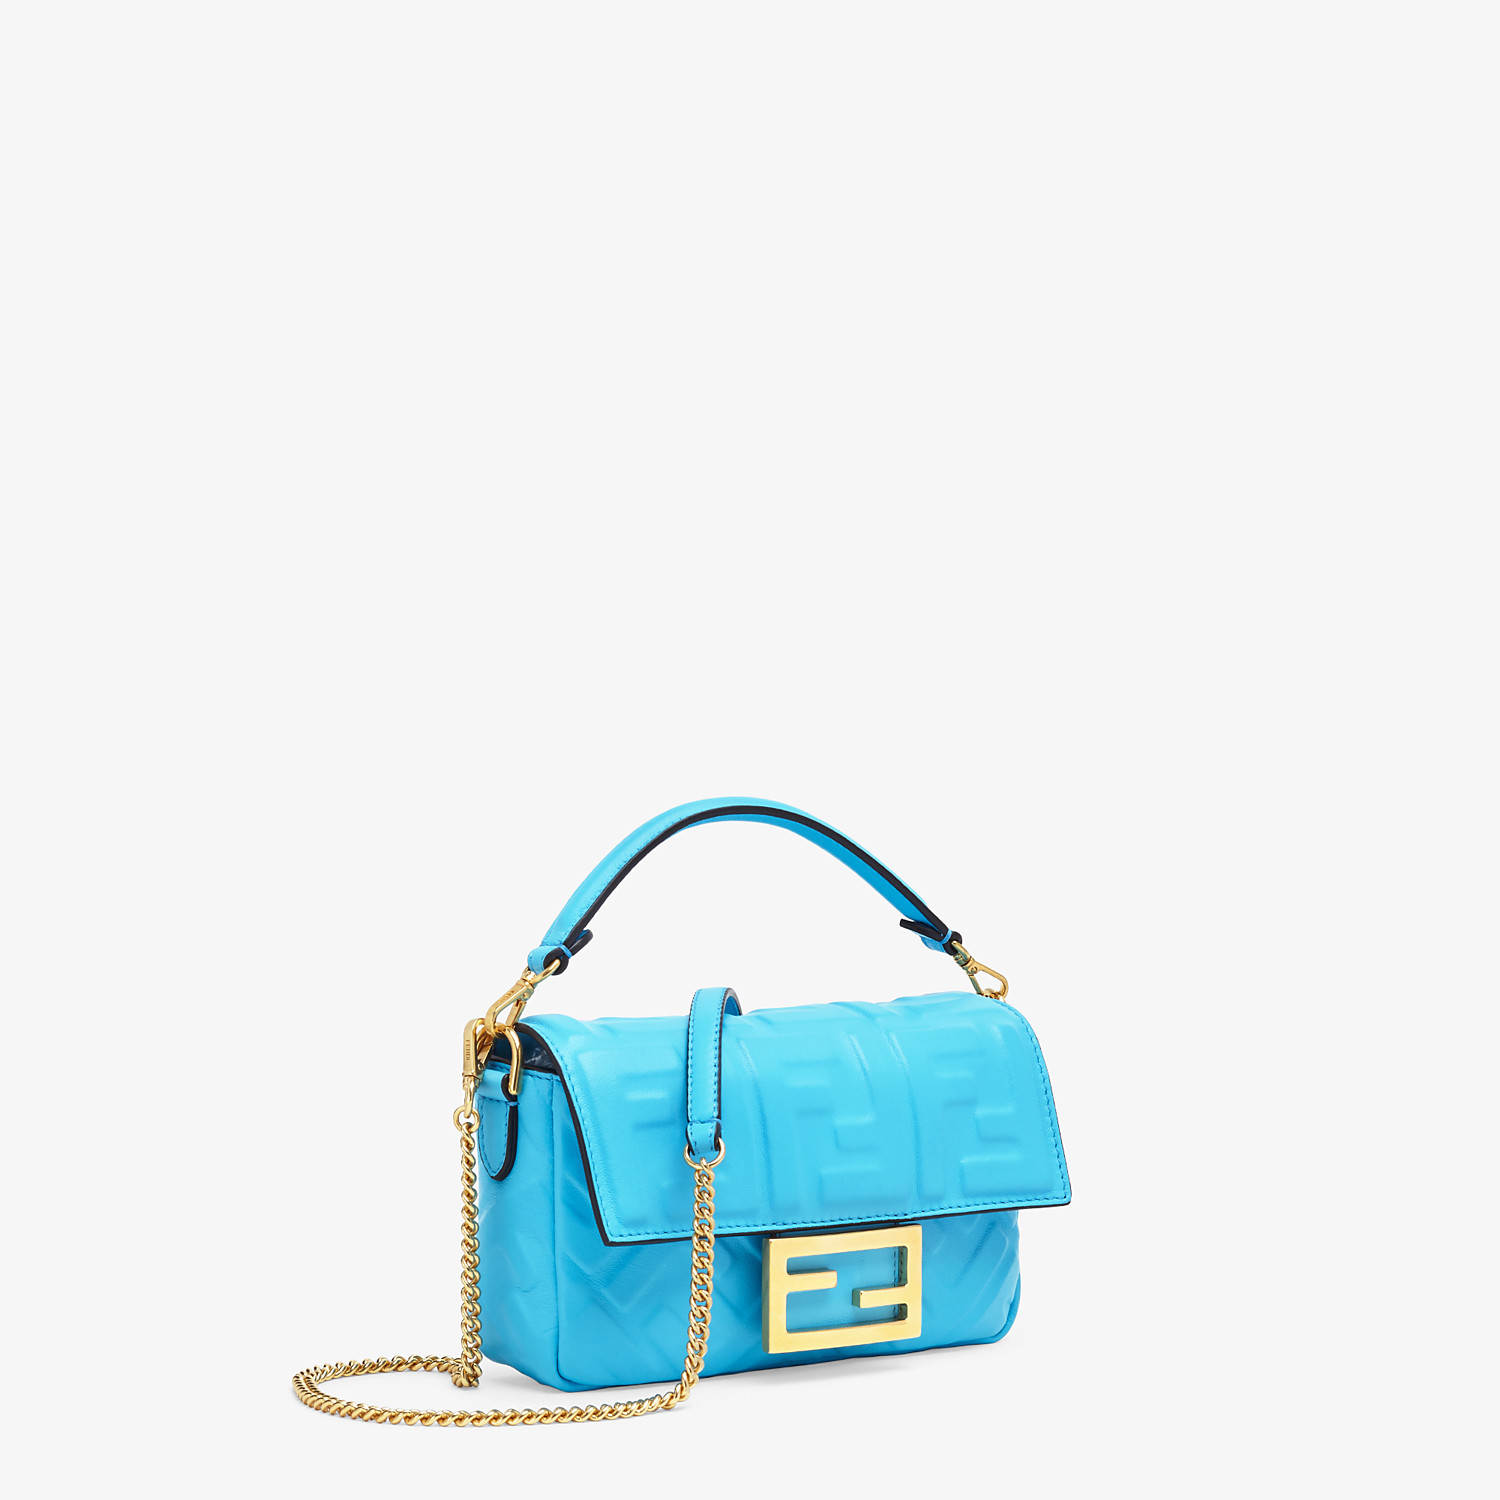 FENDI BAGUETTE - Light blue FF Signature nappa leather bag - view 3 detail